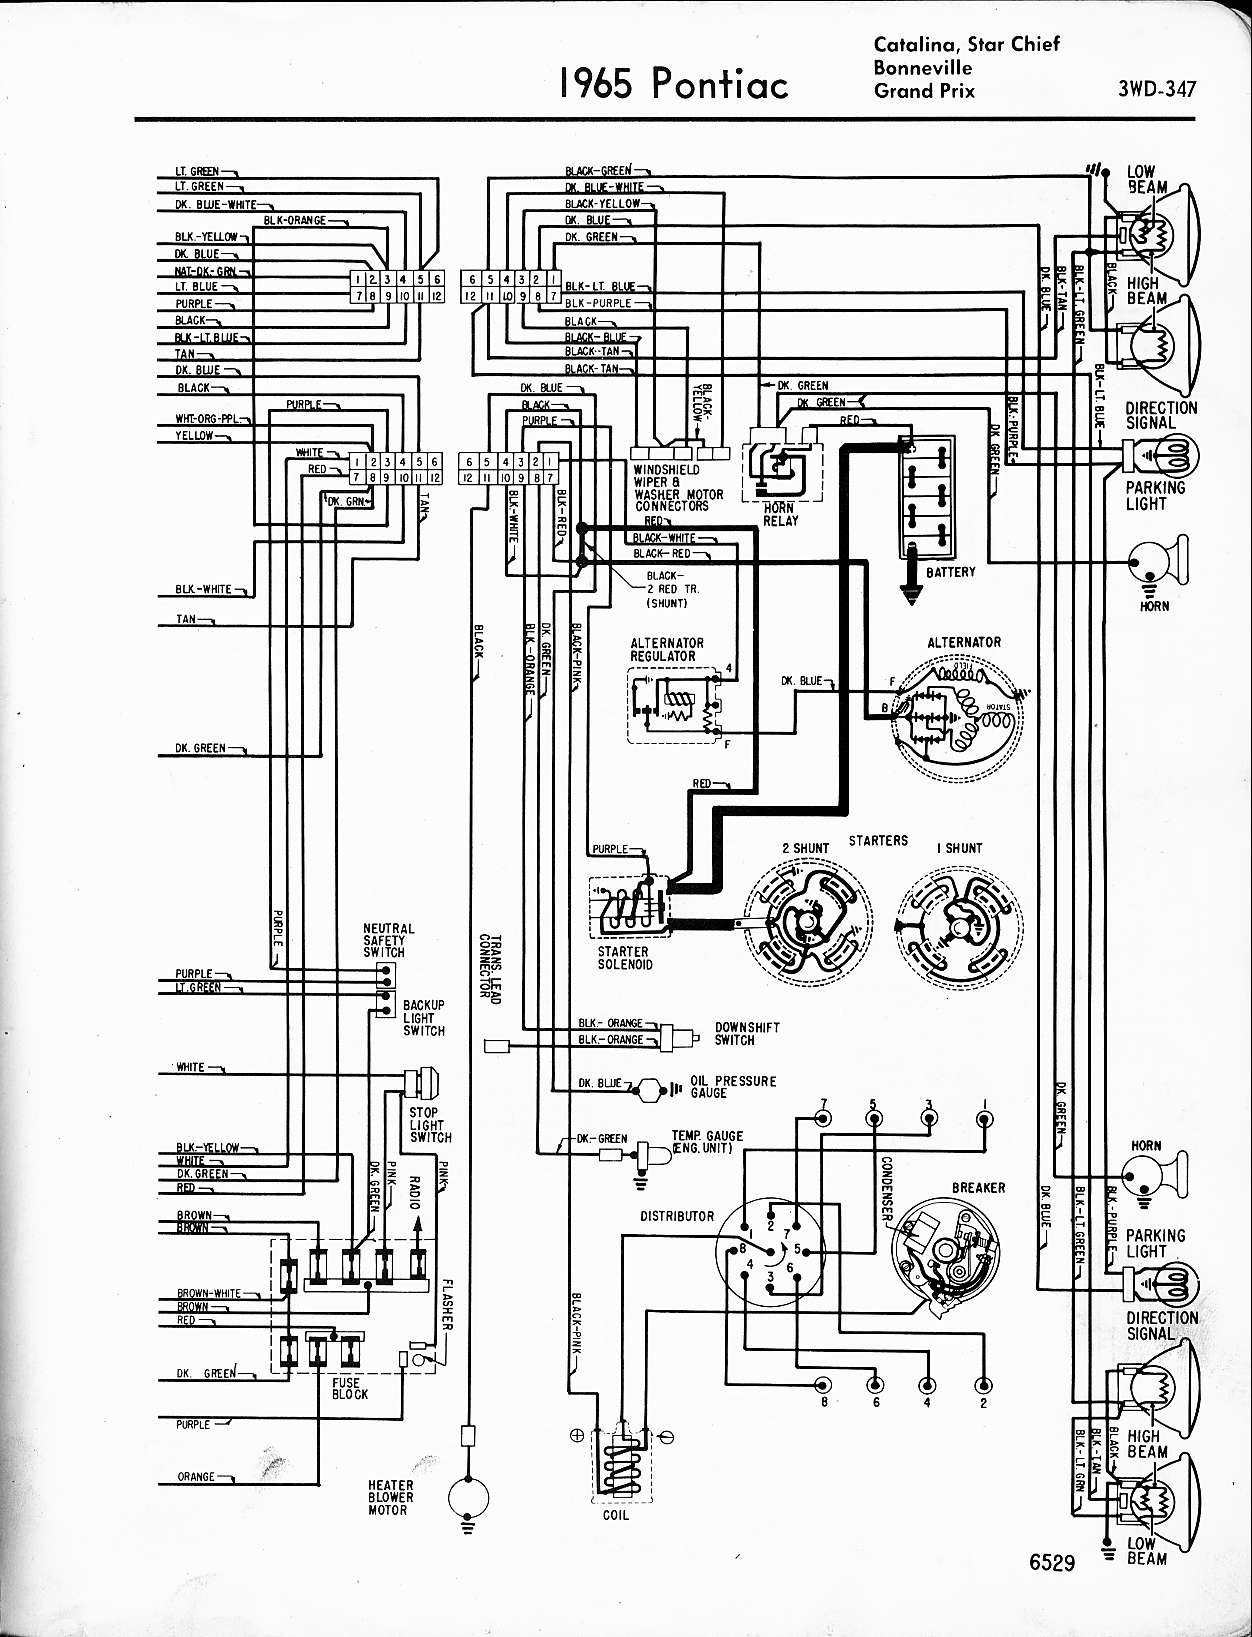 69 Gto Hood Tach Wiring Diagram Opinions About 2001 Dodge Ram Pcm Ac Schematics Diagrams U2022 Rh Parntesis Co 1966 Pontiac